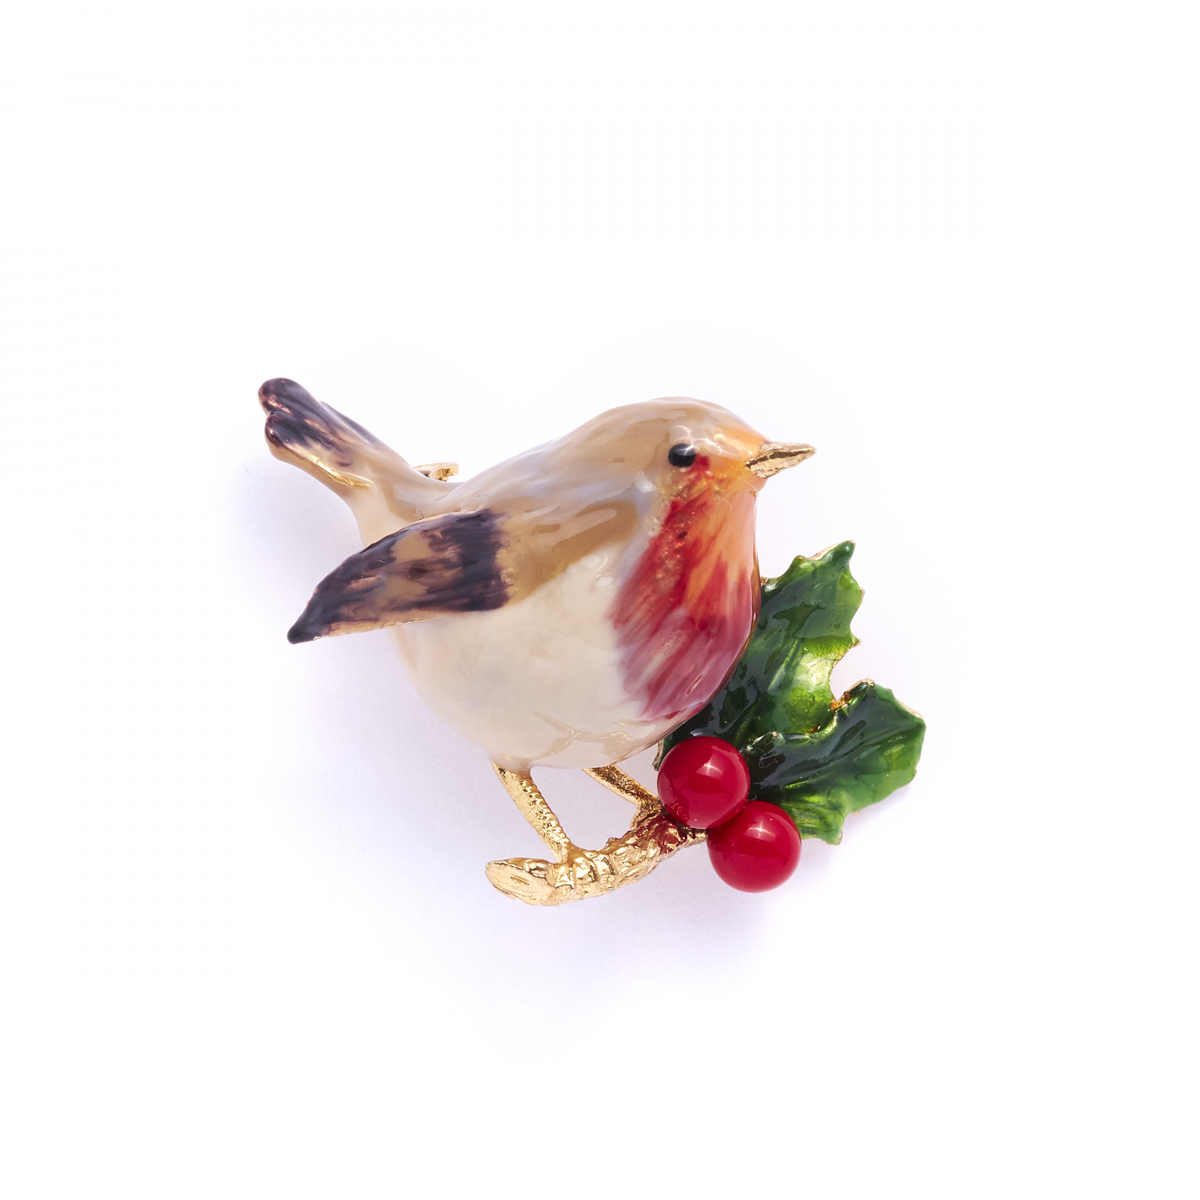 The Robin Brooch